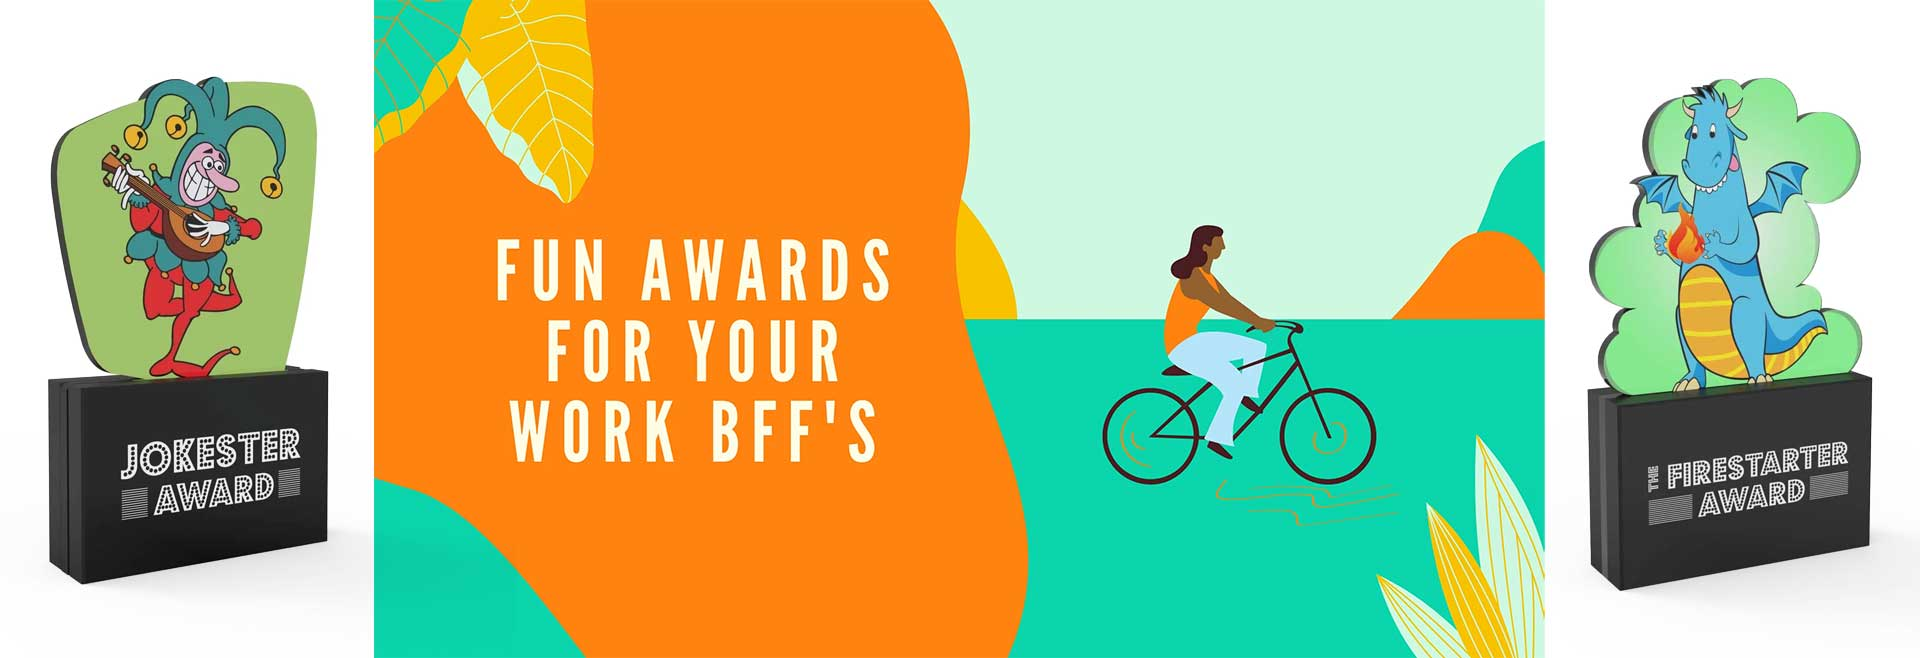 Fun Awards for your Work BFFs